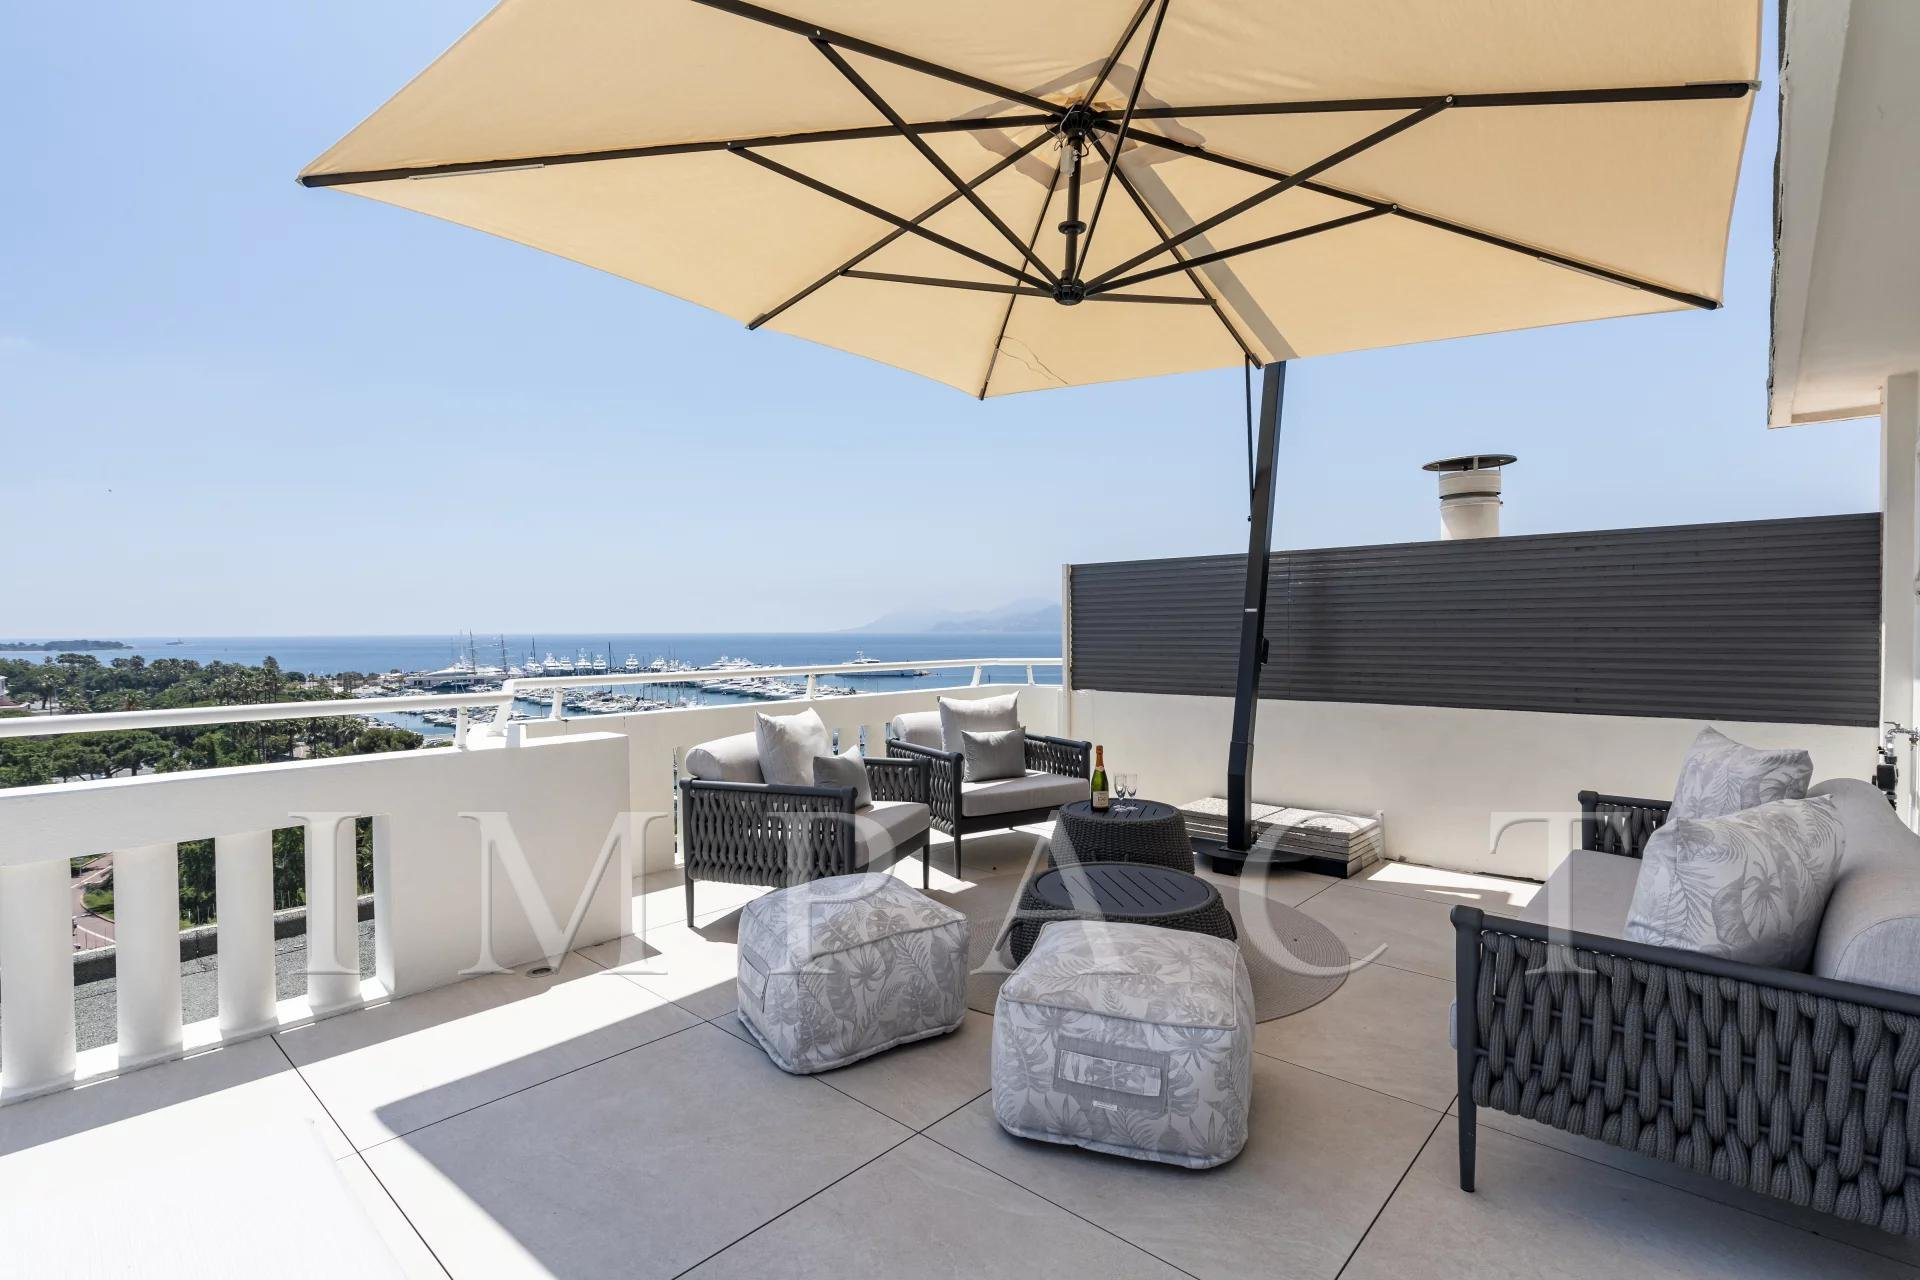 New rooftop for sale Croisette - CANNES